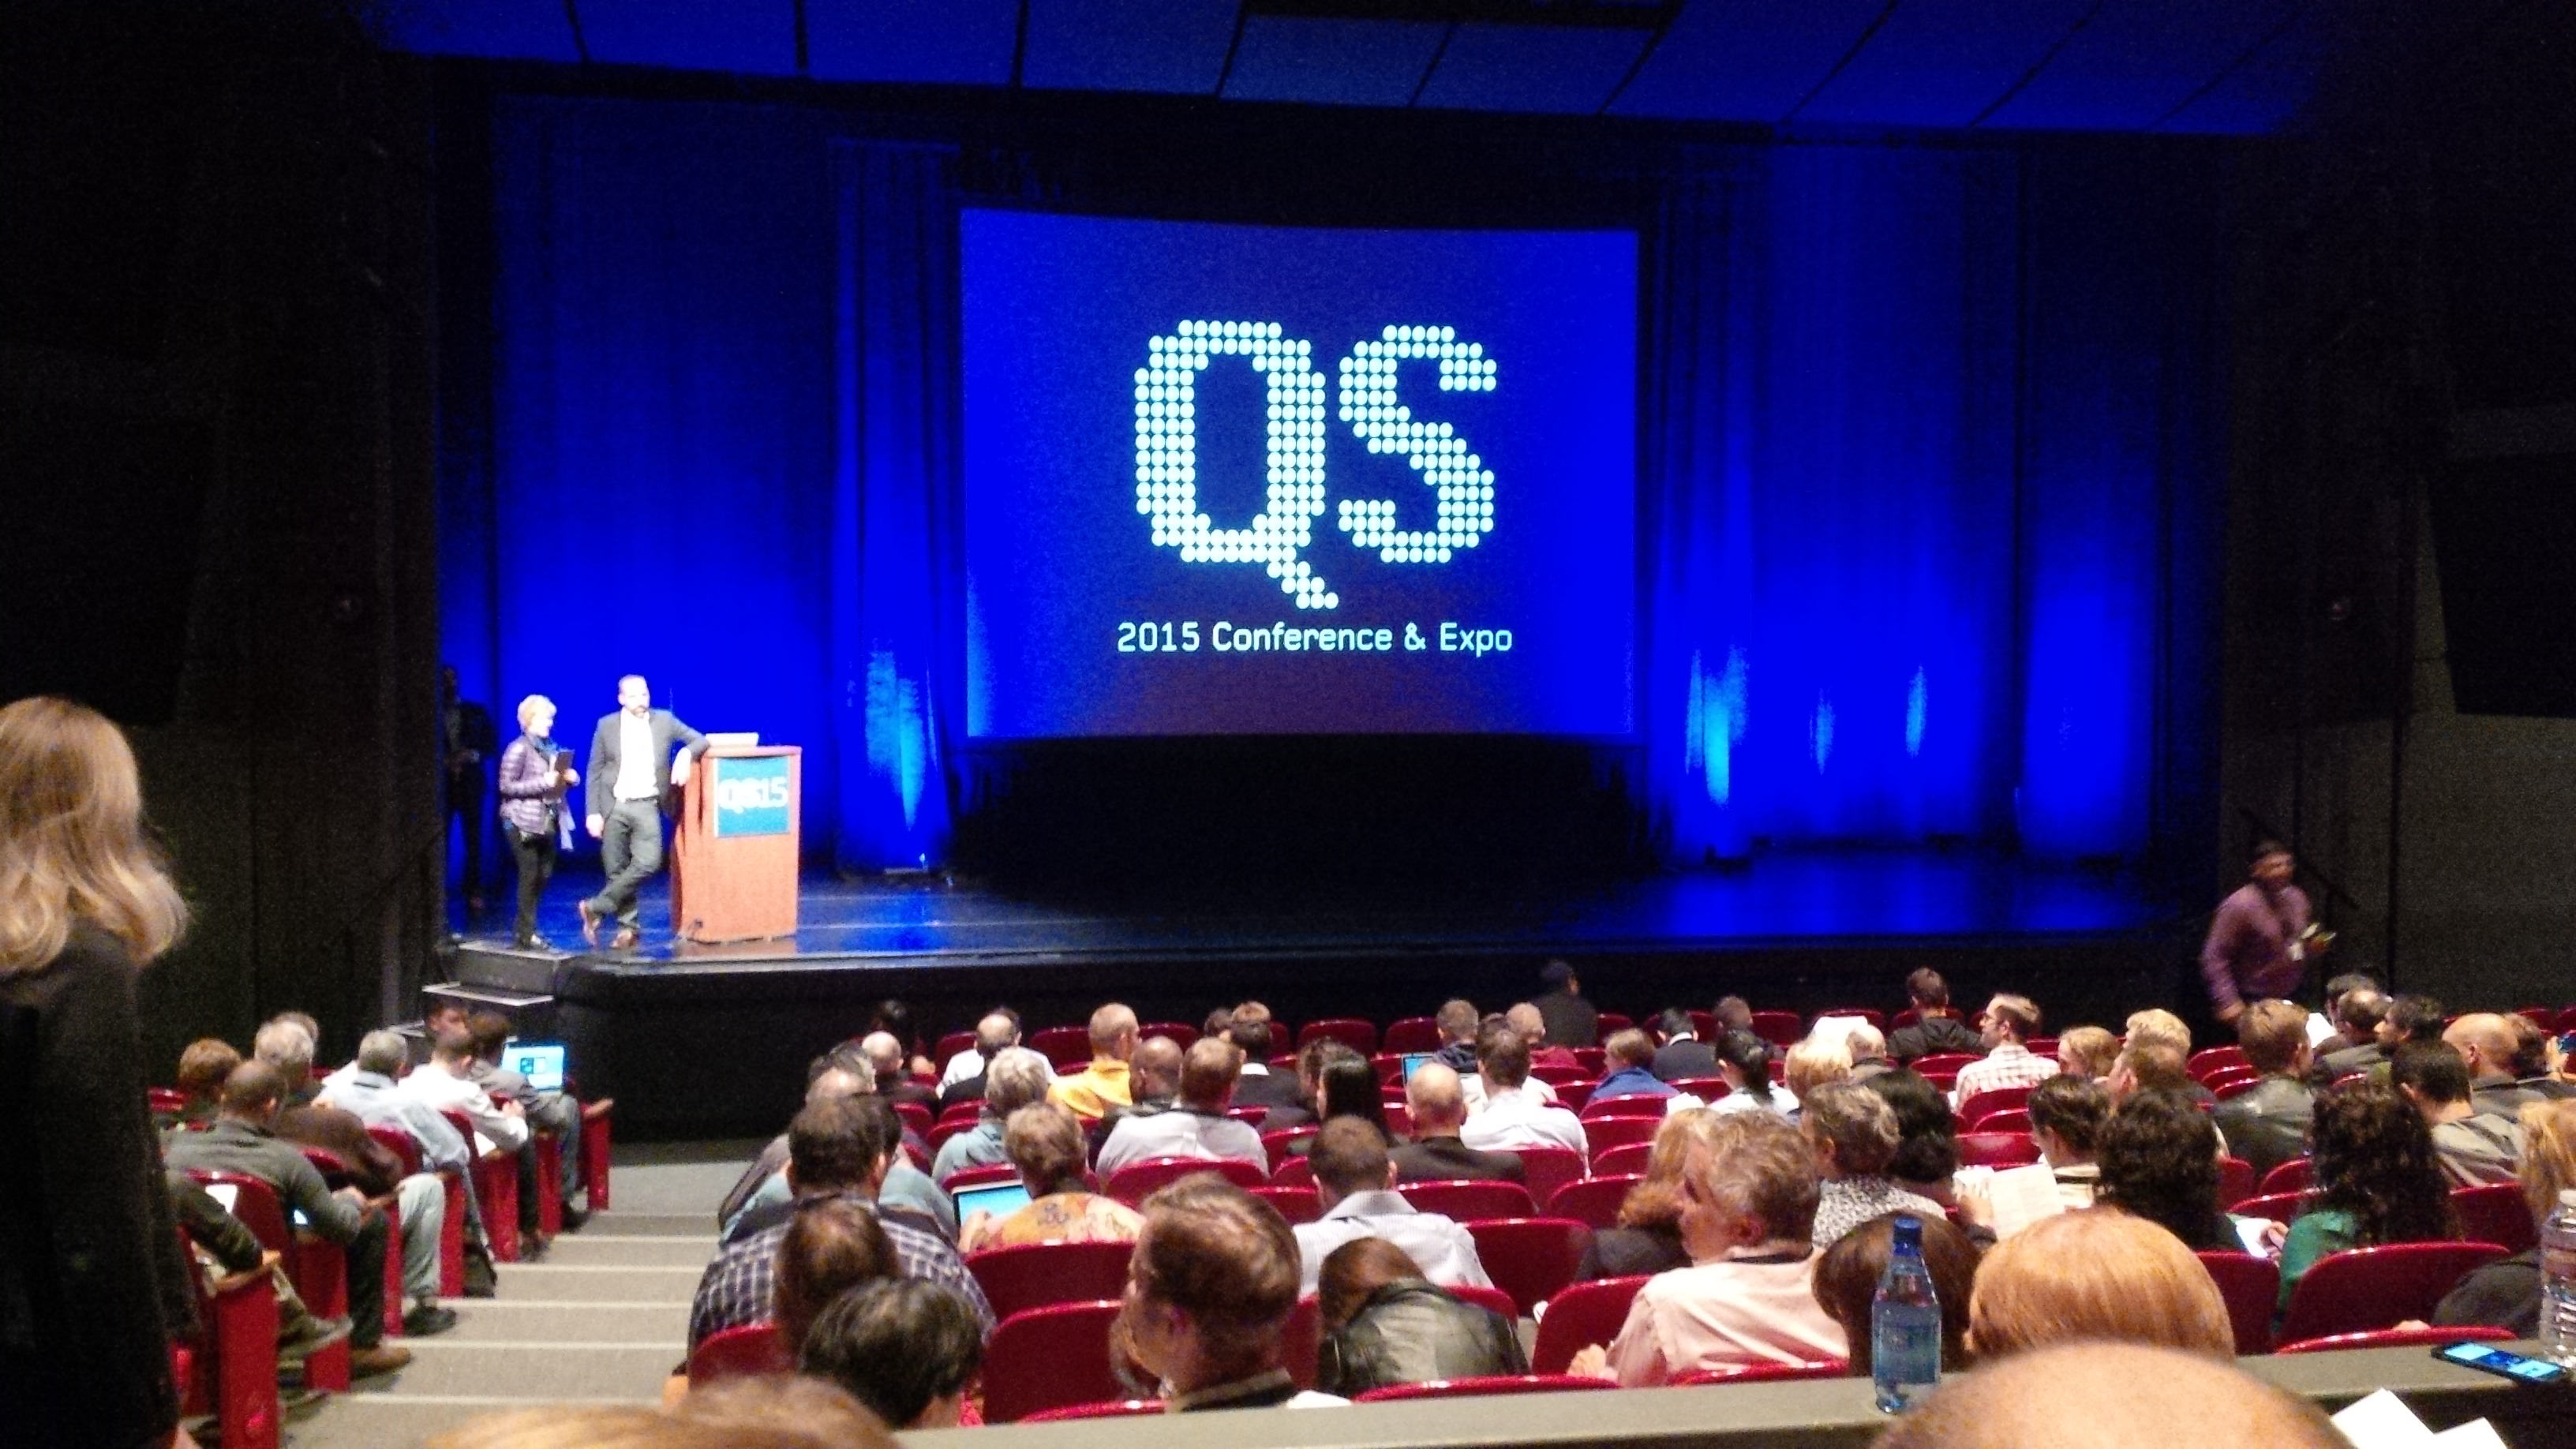 Attending Quantified Self Conference 2015 in San Francisco